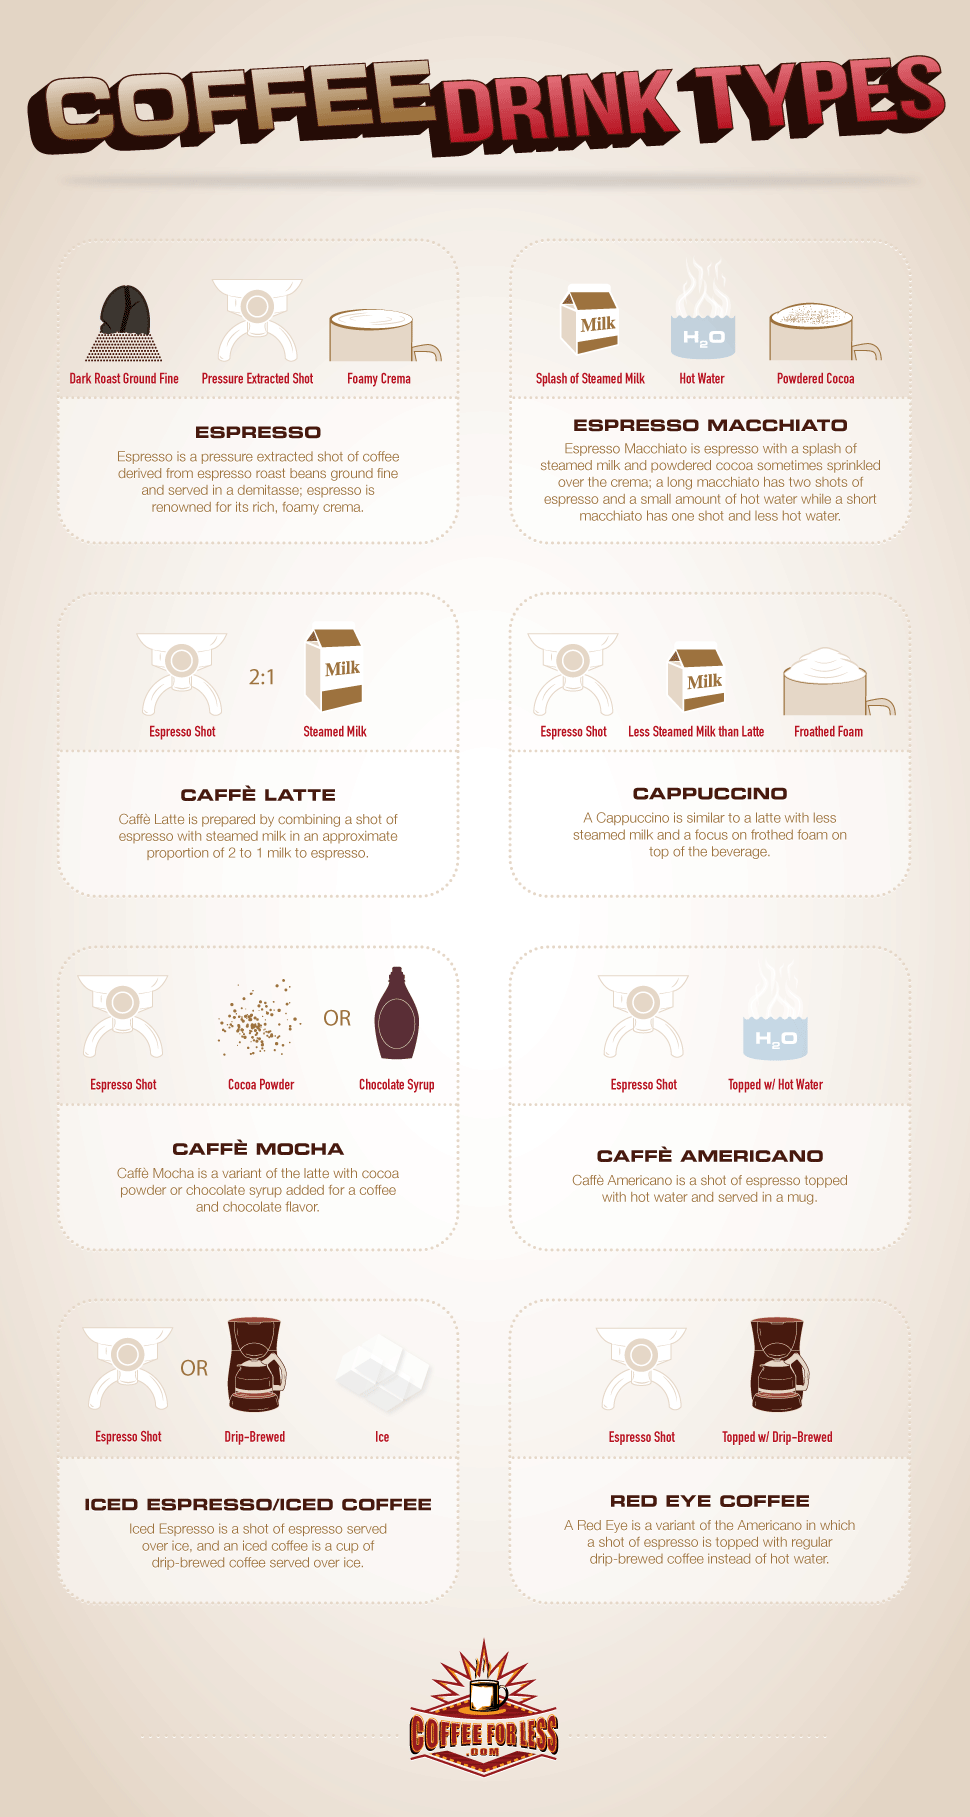 8 coffee drink types discussed here let you know what's in your favorite cup of coffee.